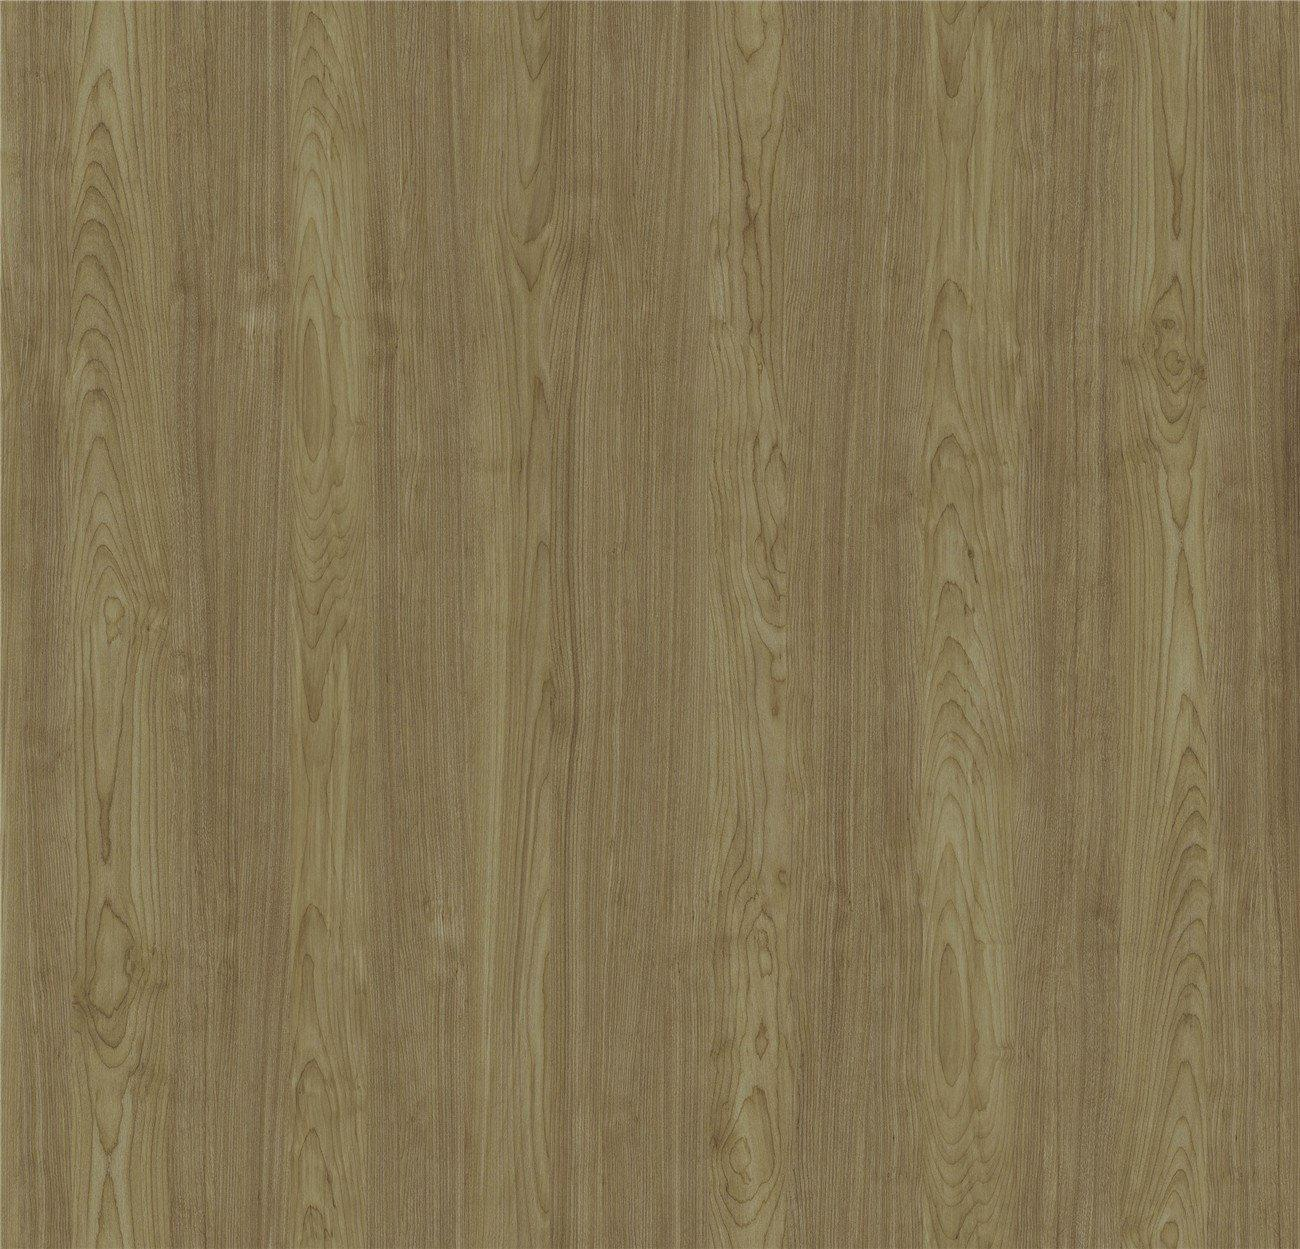 hekios contact paper to cover desk abstract for master room I.DECOR-1